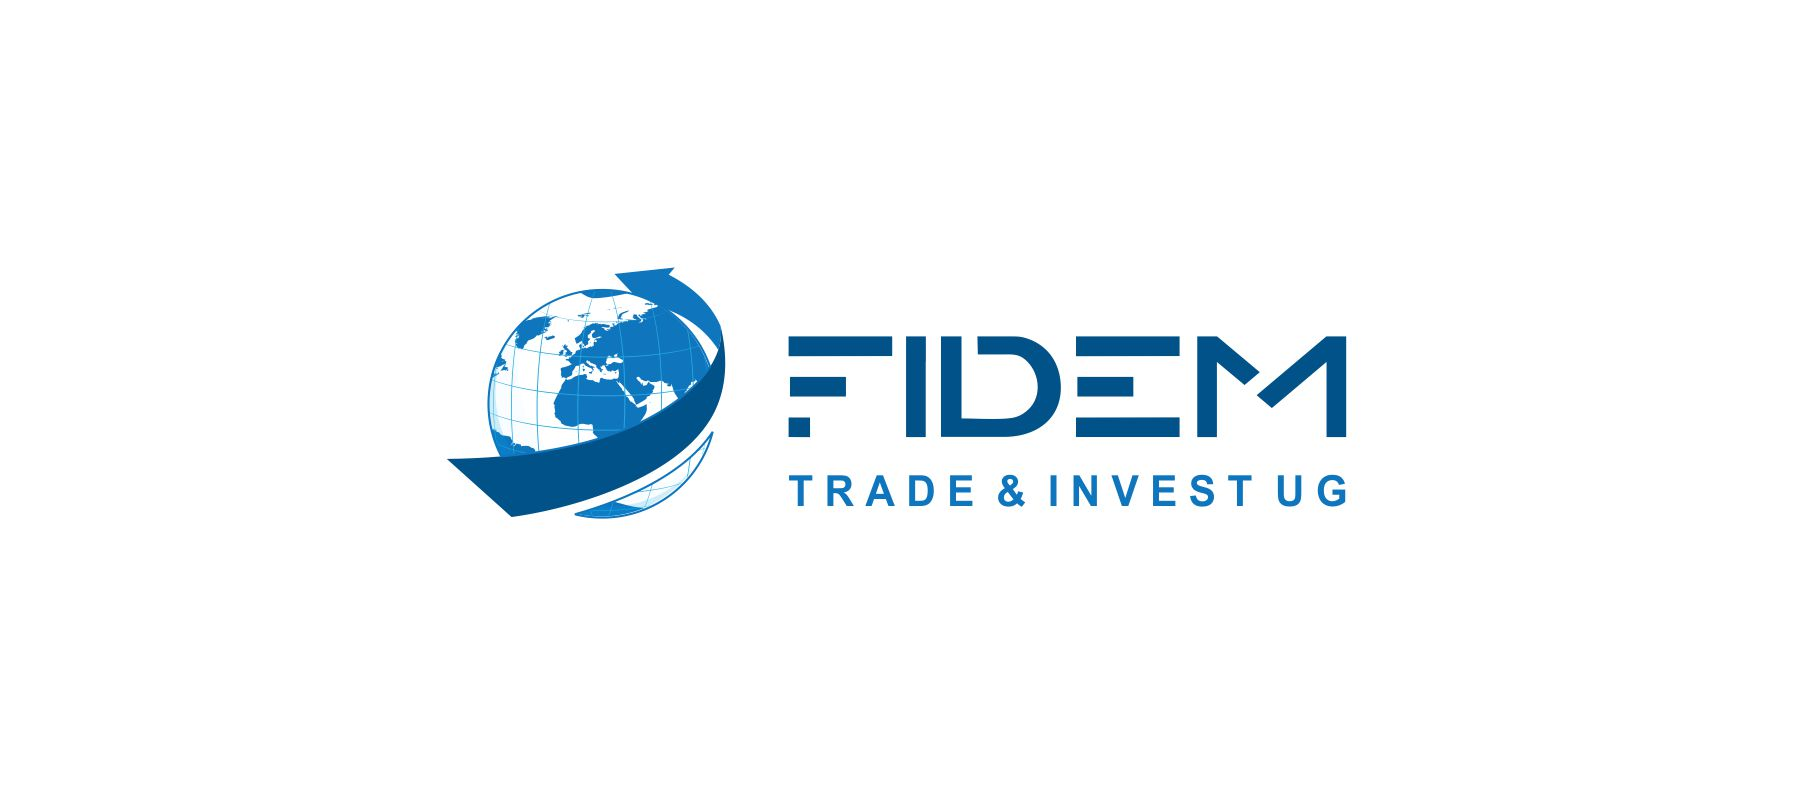 Logo Design by Muhammad Aslam - Entry No. 233 in the Logo Design Contest Professional Logo Design for FIDEM Trade & Invest UG.